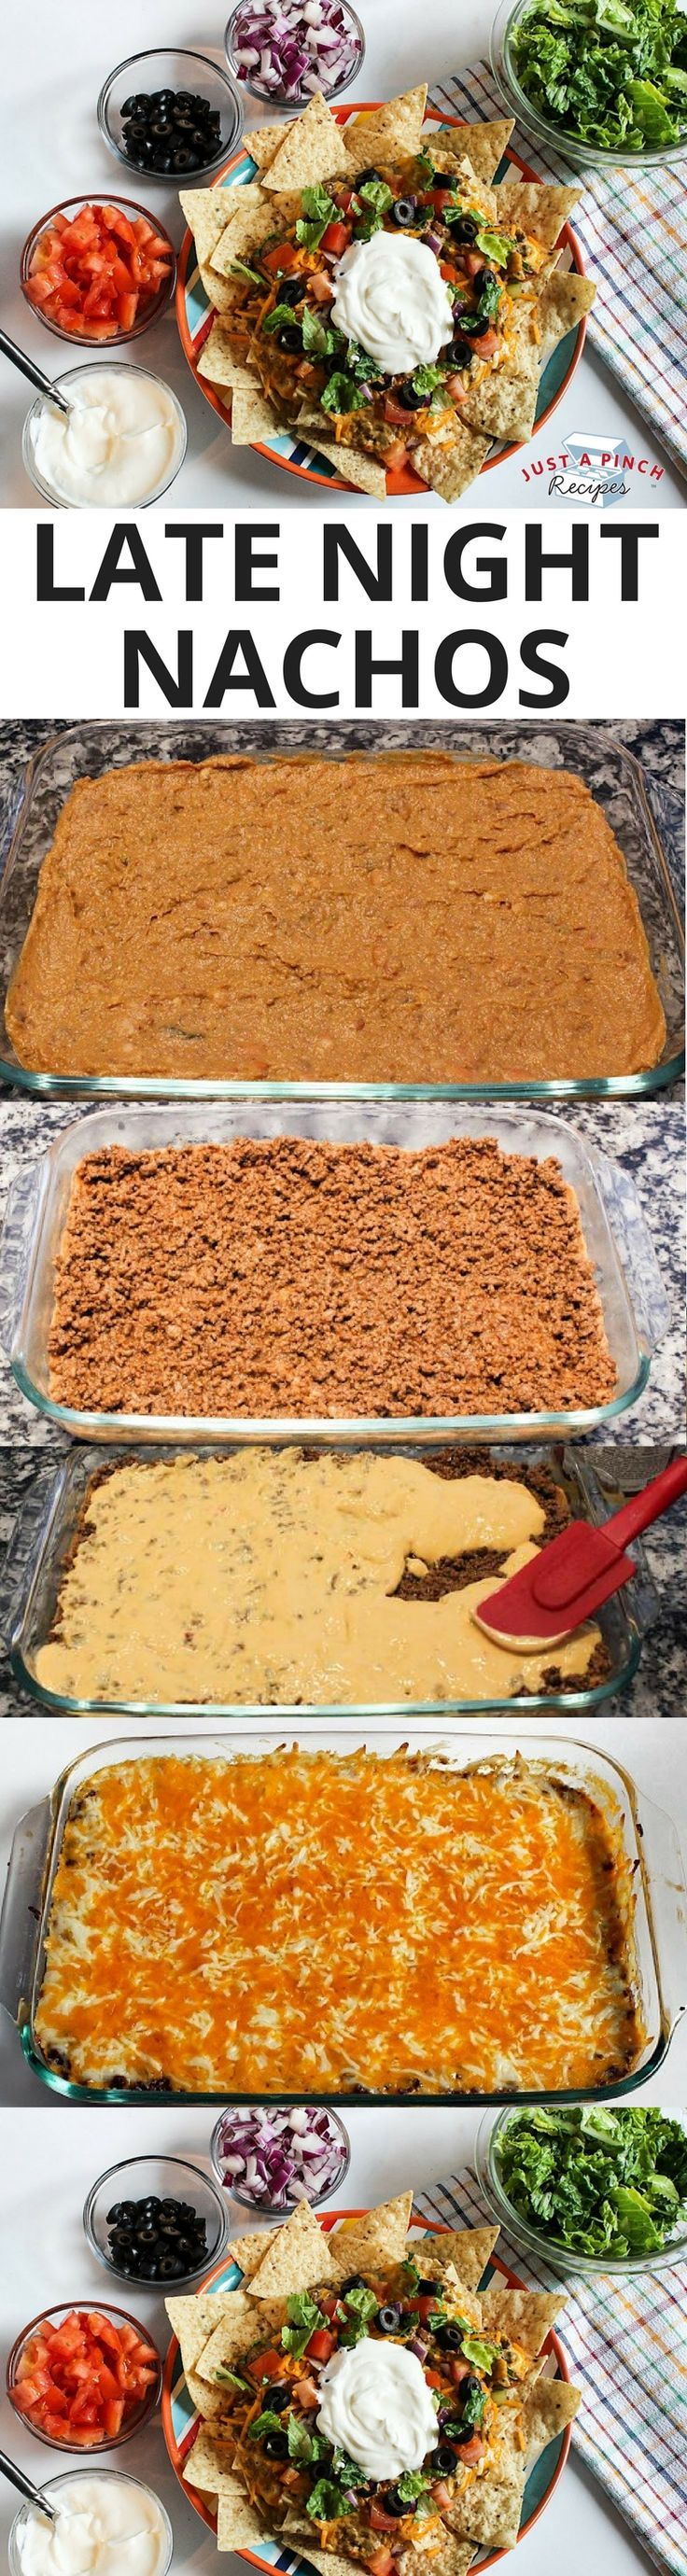 The star is the layers of savory beans, taco meat, nacho cheese and shredded cheese. Once baked, it's ooey gooey deliciousness. Serve over your favorite tortilla chips with your favorite toppings and you have fantastic nachos. Perfect tailgating appetizer